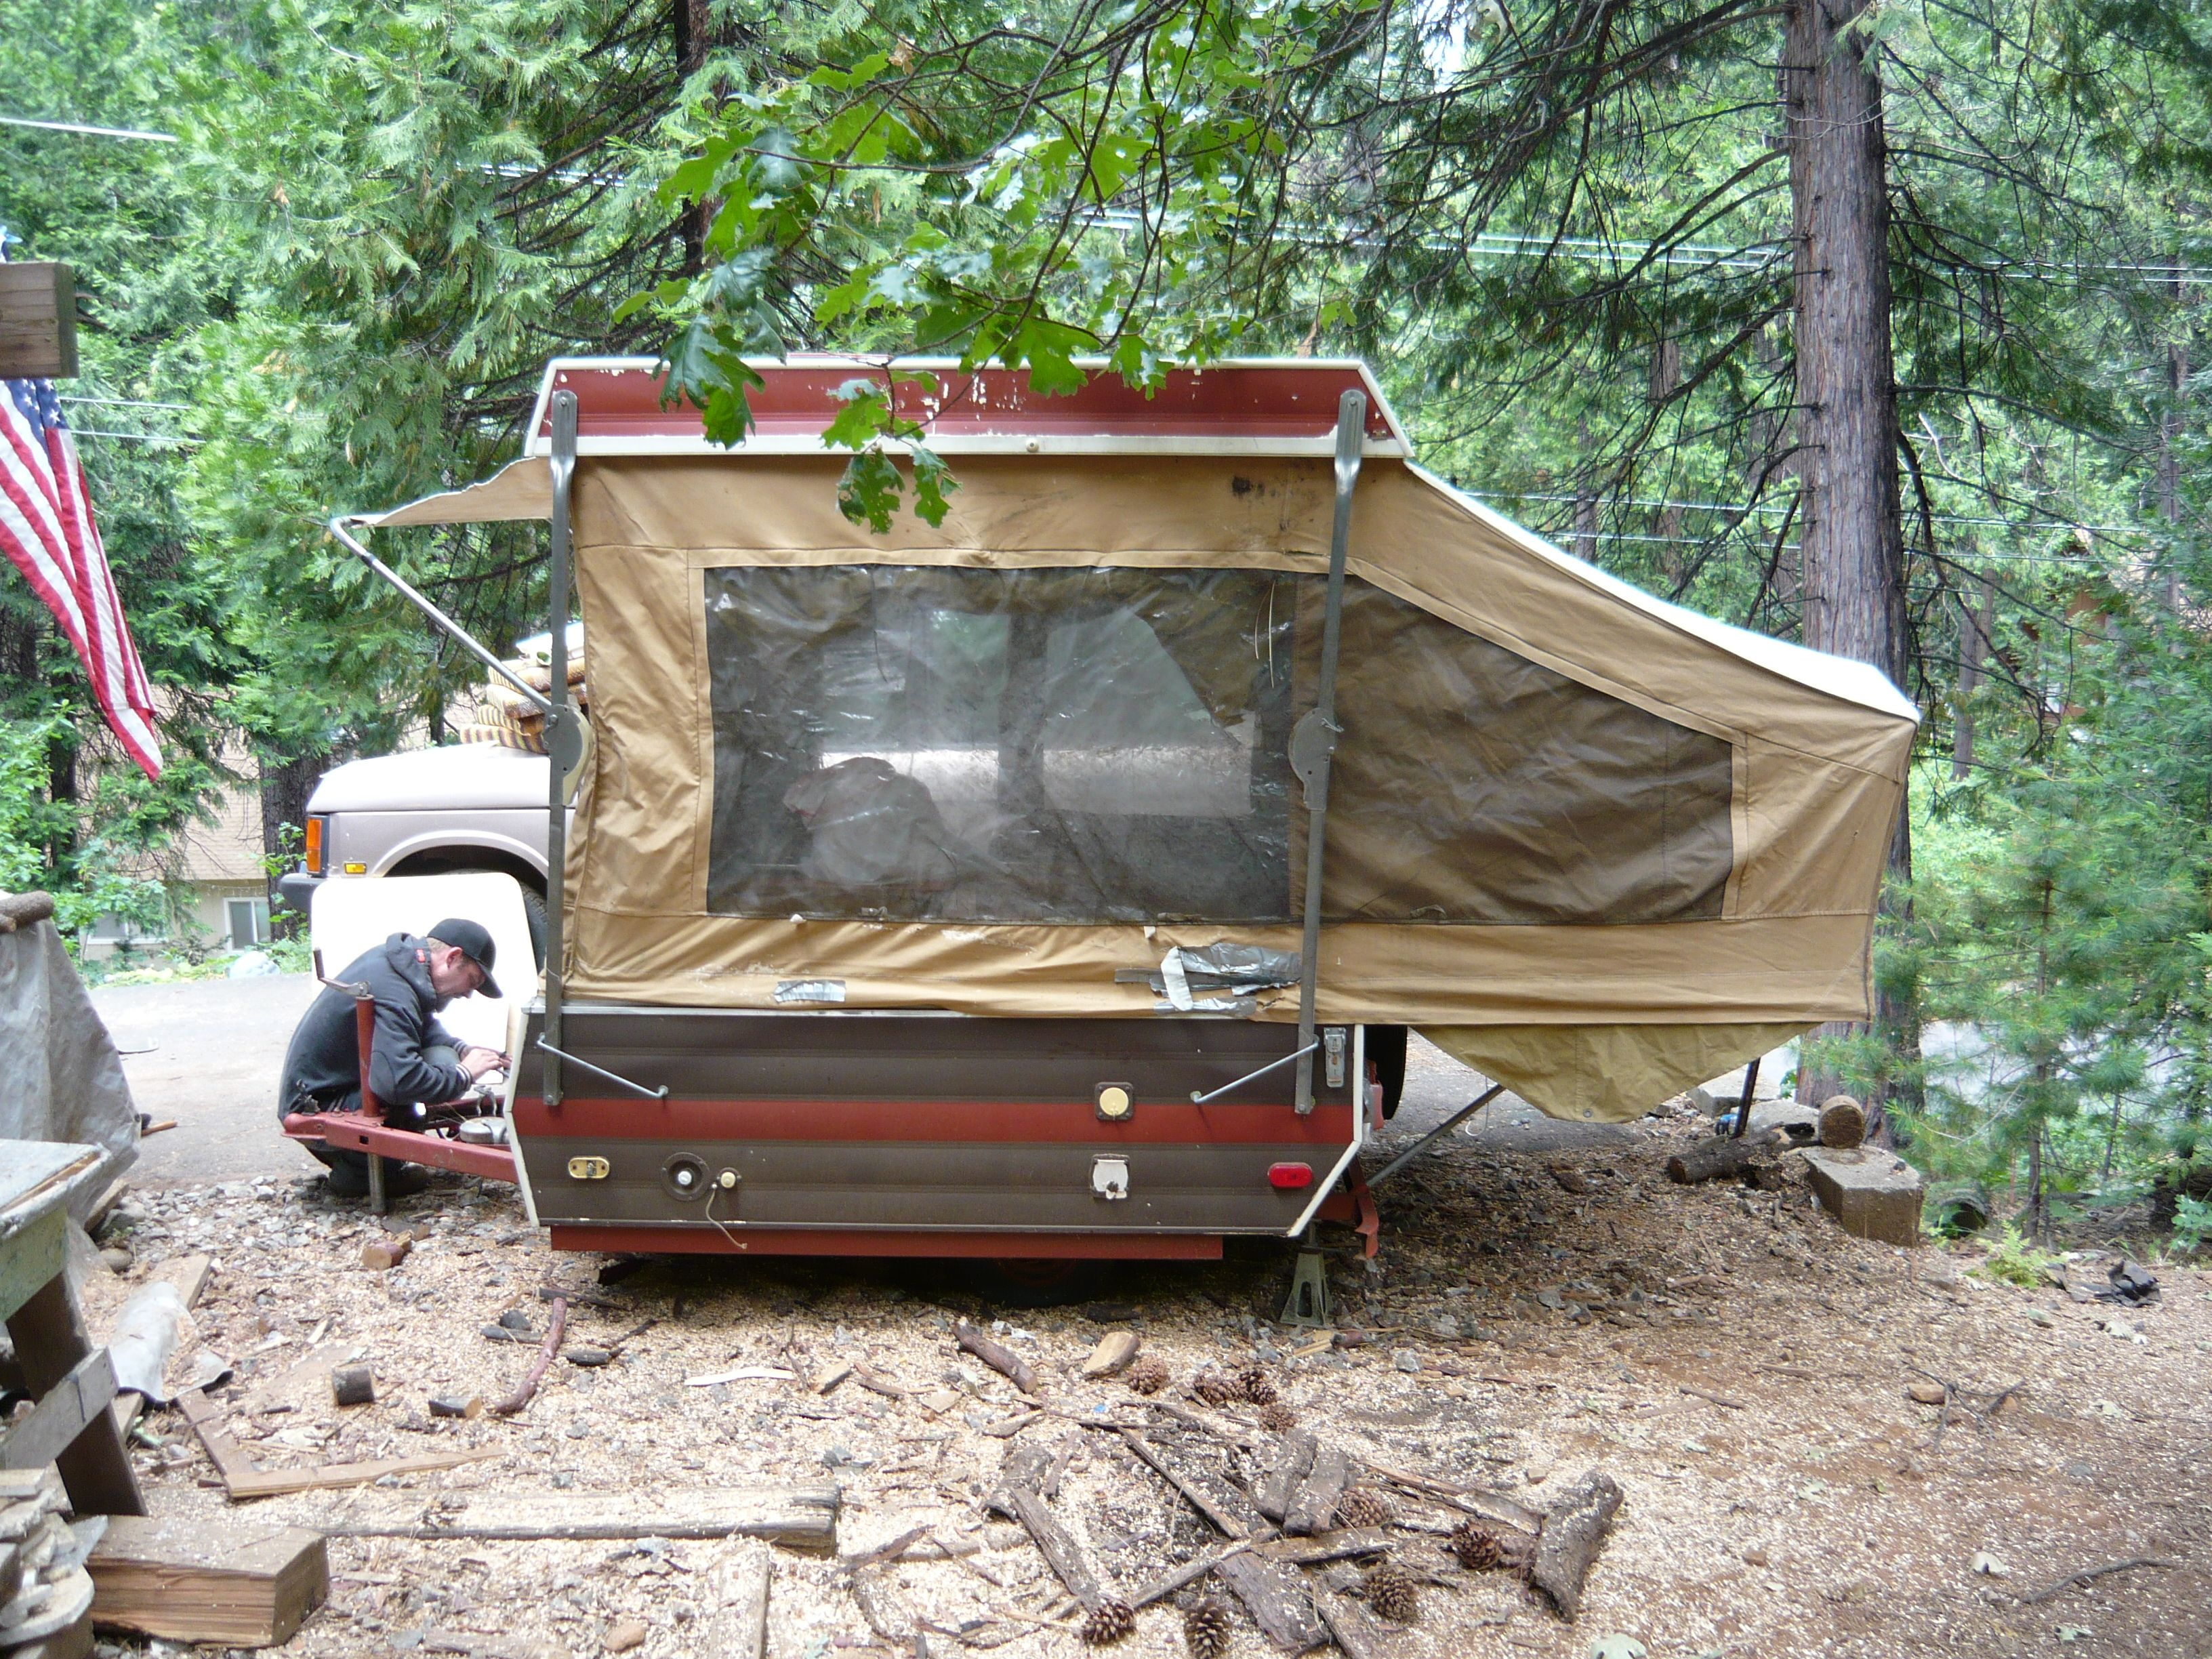 1980 Viking Pop Up Camping Trailer Great Trailer For 1 Or 2